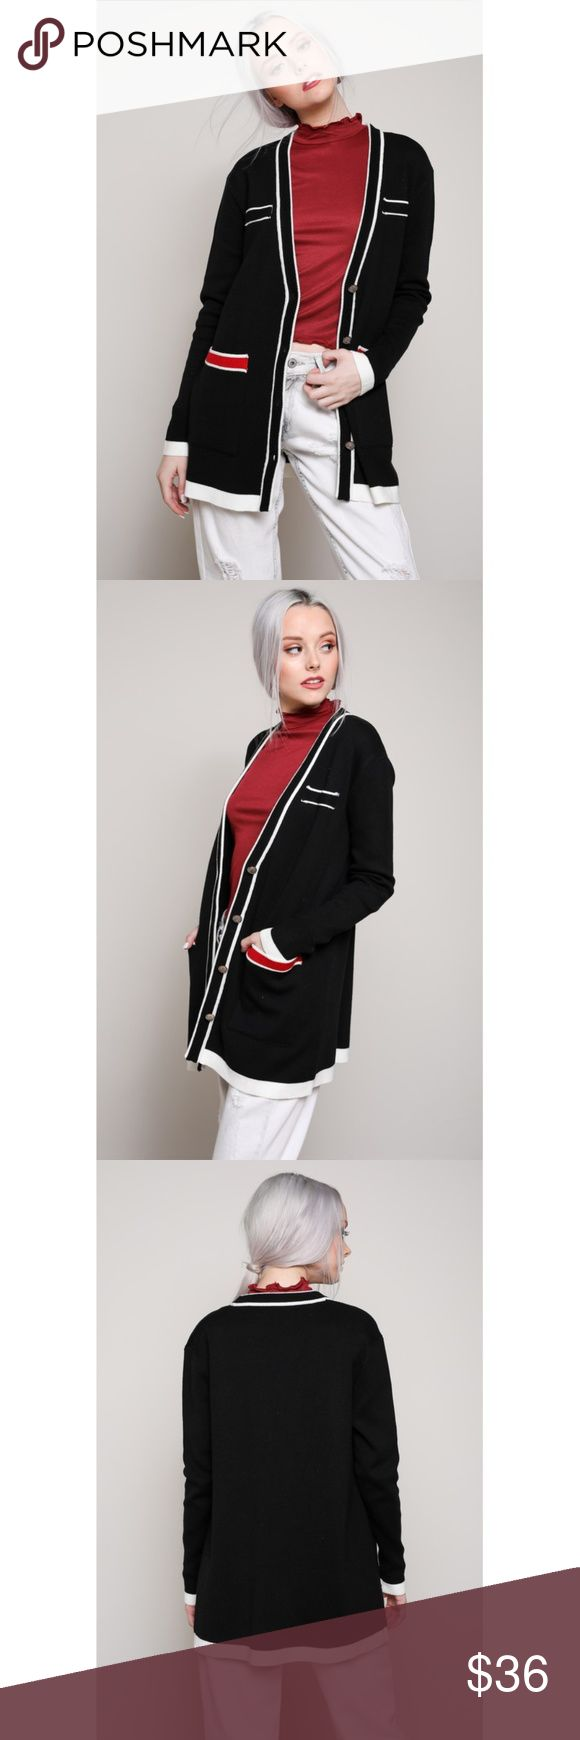 Black Preppy Style Cardigan Preppy styleon trend thick knit cardigan with contrast pattern and gold buttons. Cardigan has two pockets and 4 buttons.   chic work wear, dinner date, evening out,warm weather,layering sweater trendy Available in Black or cream.  Sizes S/M/L Key Chic Sweaters Cardigans